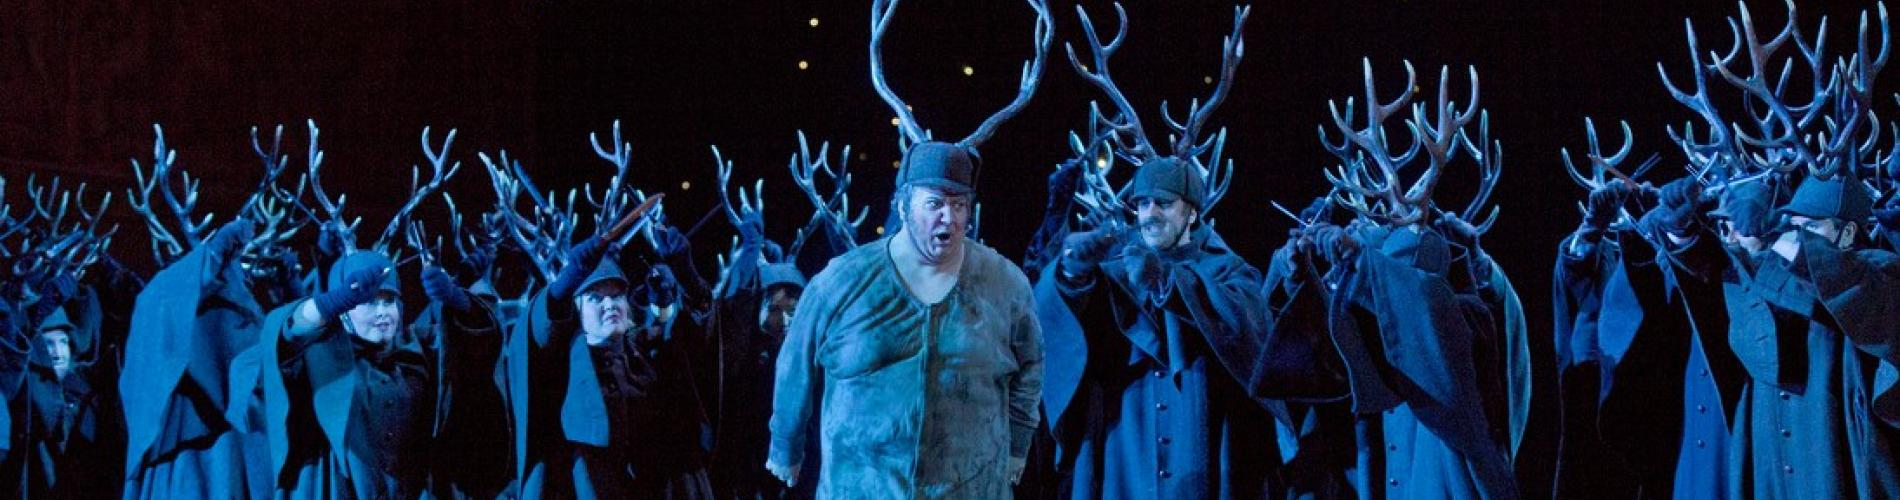 Falstaff at the Met - Photo: © ken howard/Metropolitan Opera